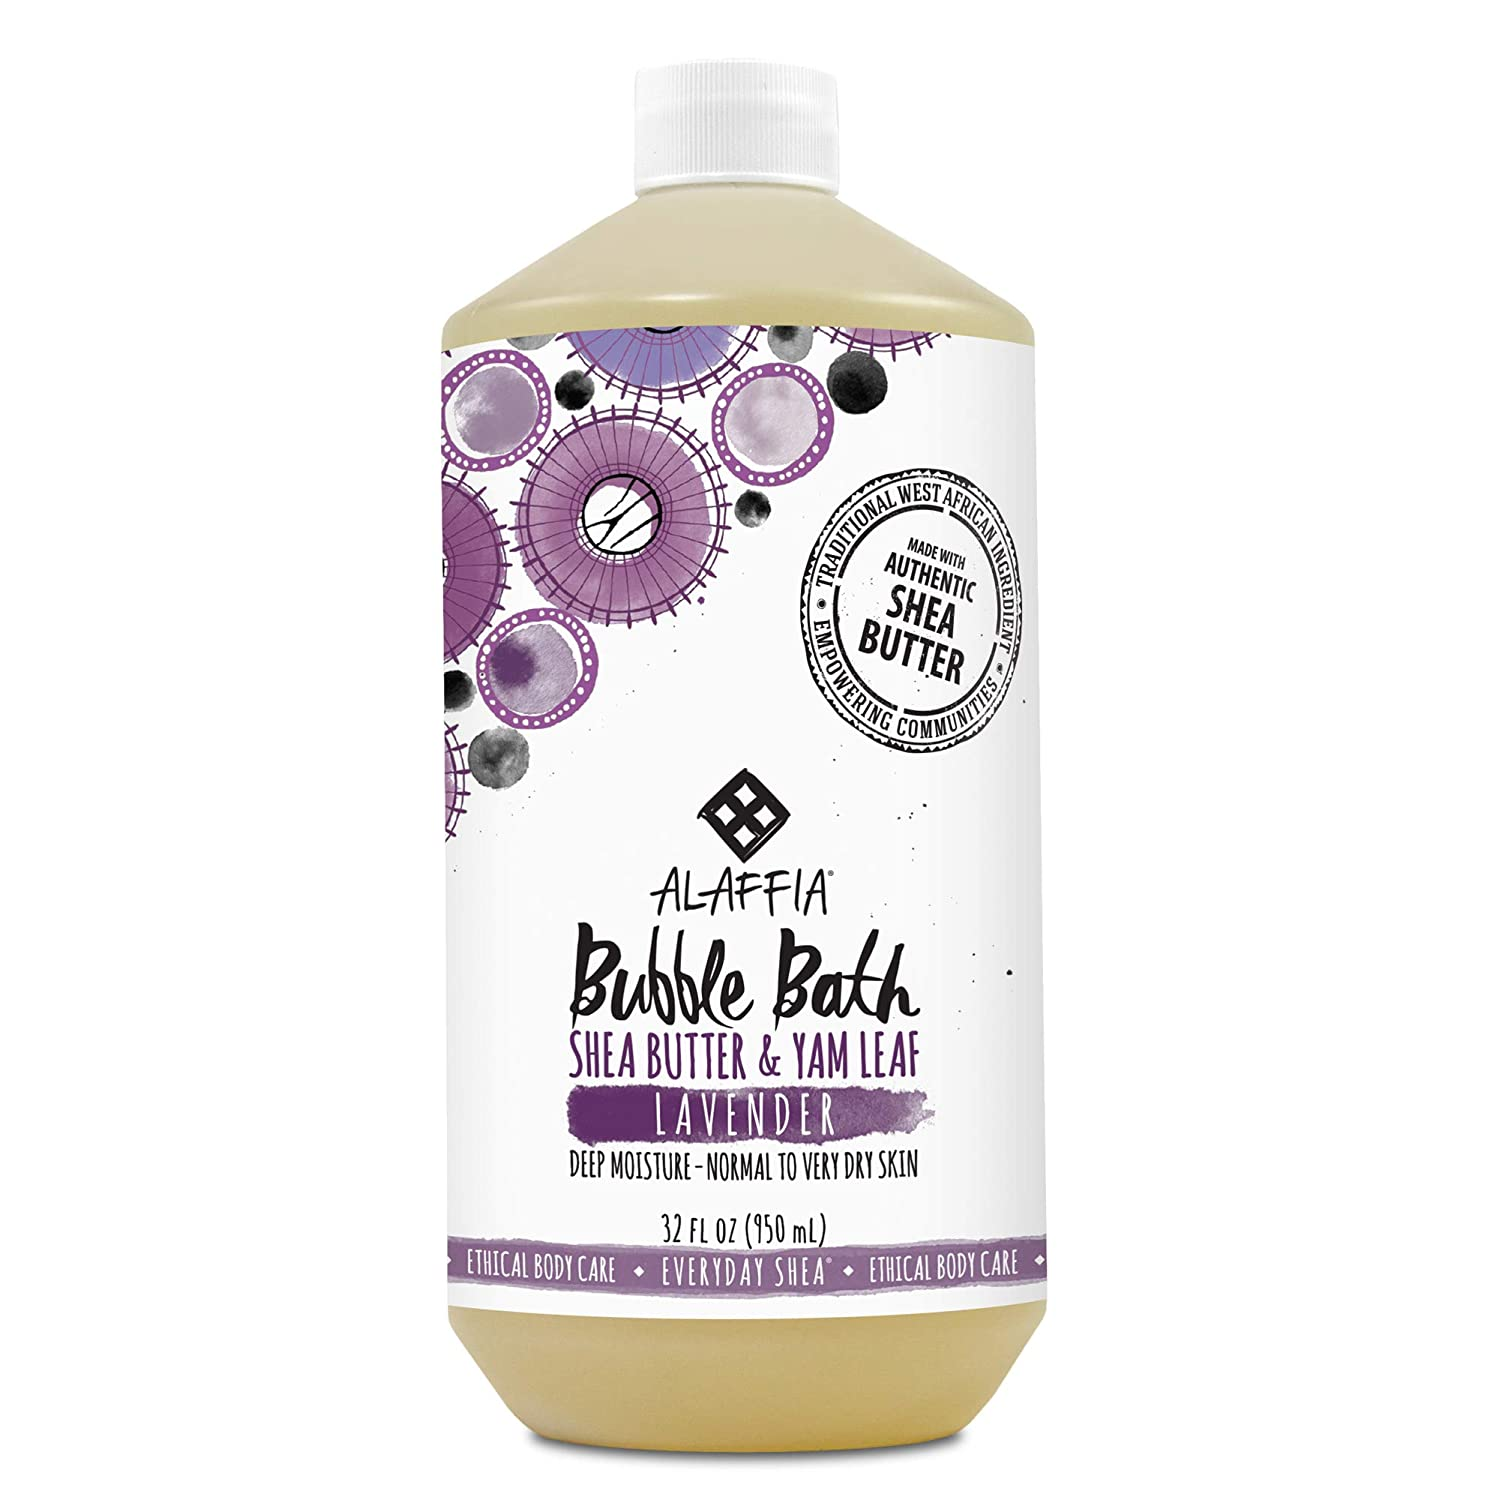 Alaffia - Everyday Shea Bubble Bath, For All Skin Types, Soothing Support for Deep Relaxation and Soft Moisturized Skin with Shea Butter and Yam Leaf, Fair Trade, Lavender, 32 Ounces (FFP)